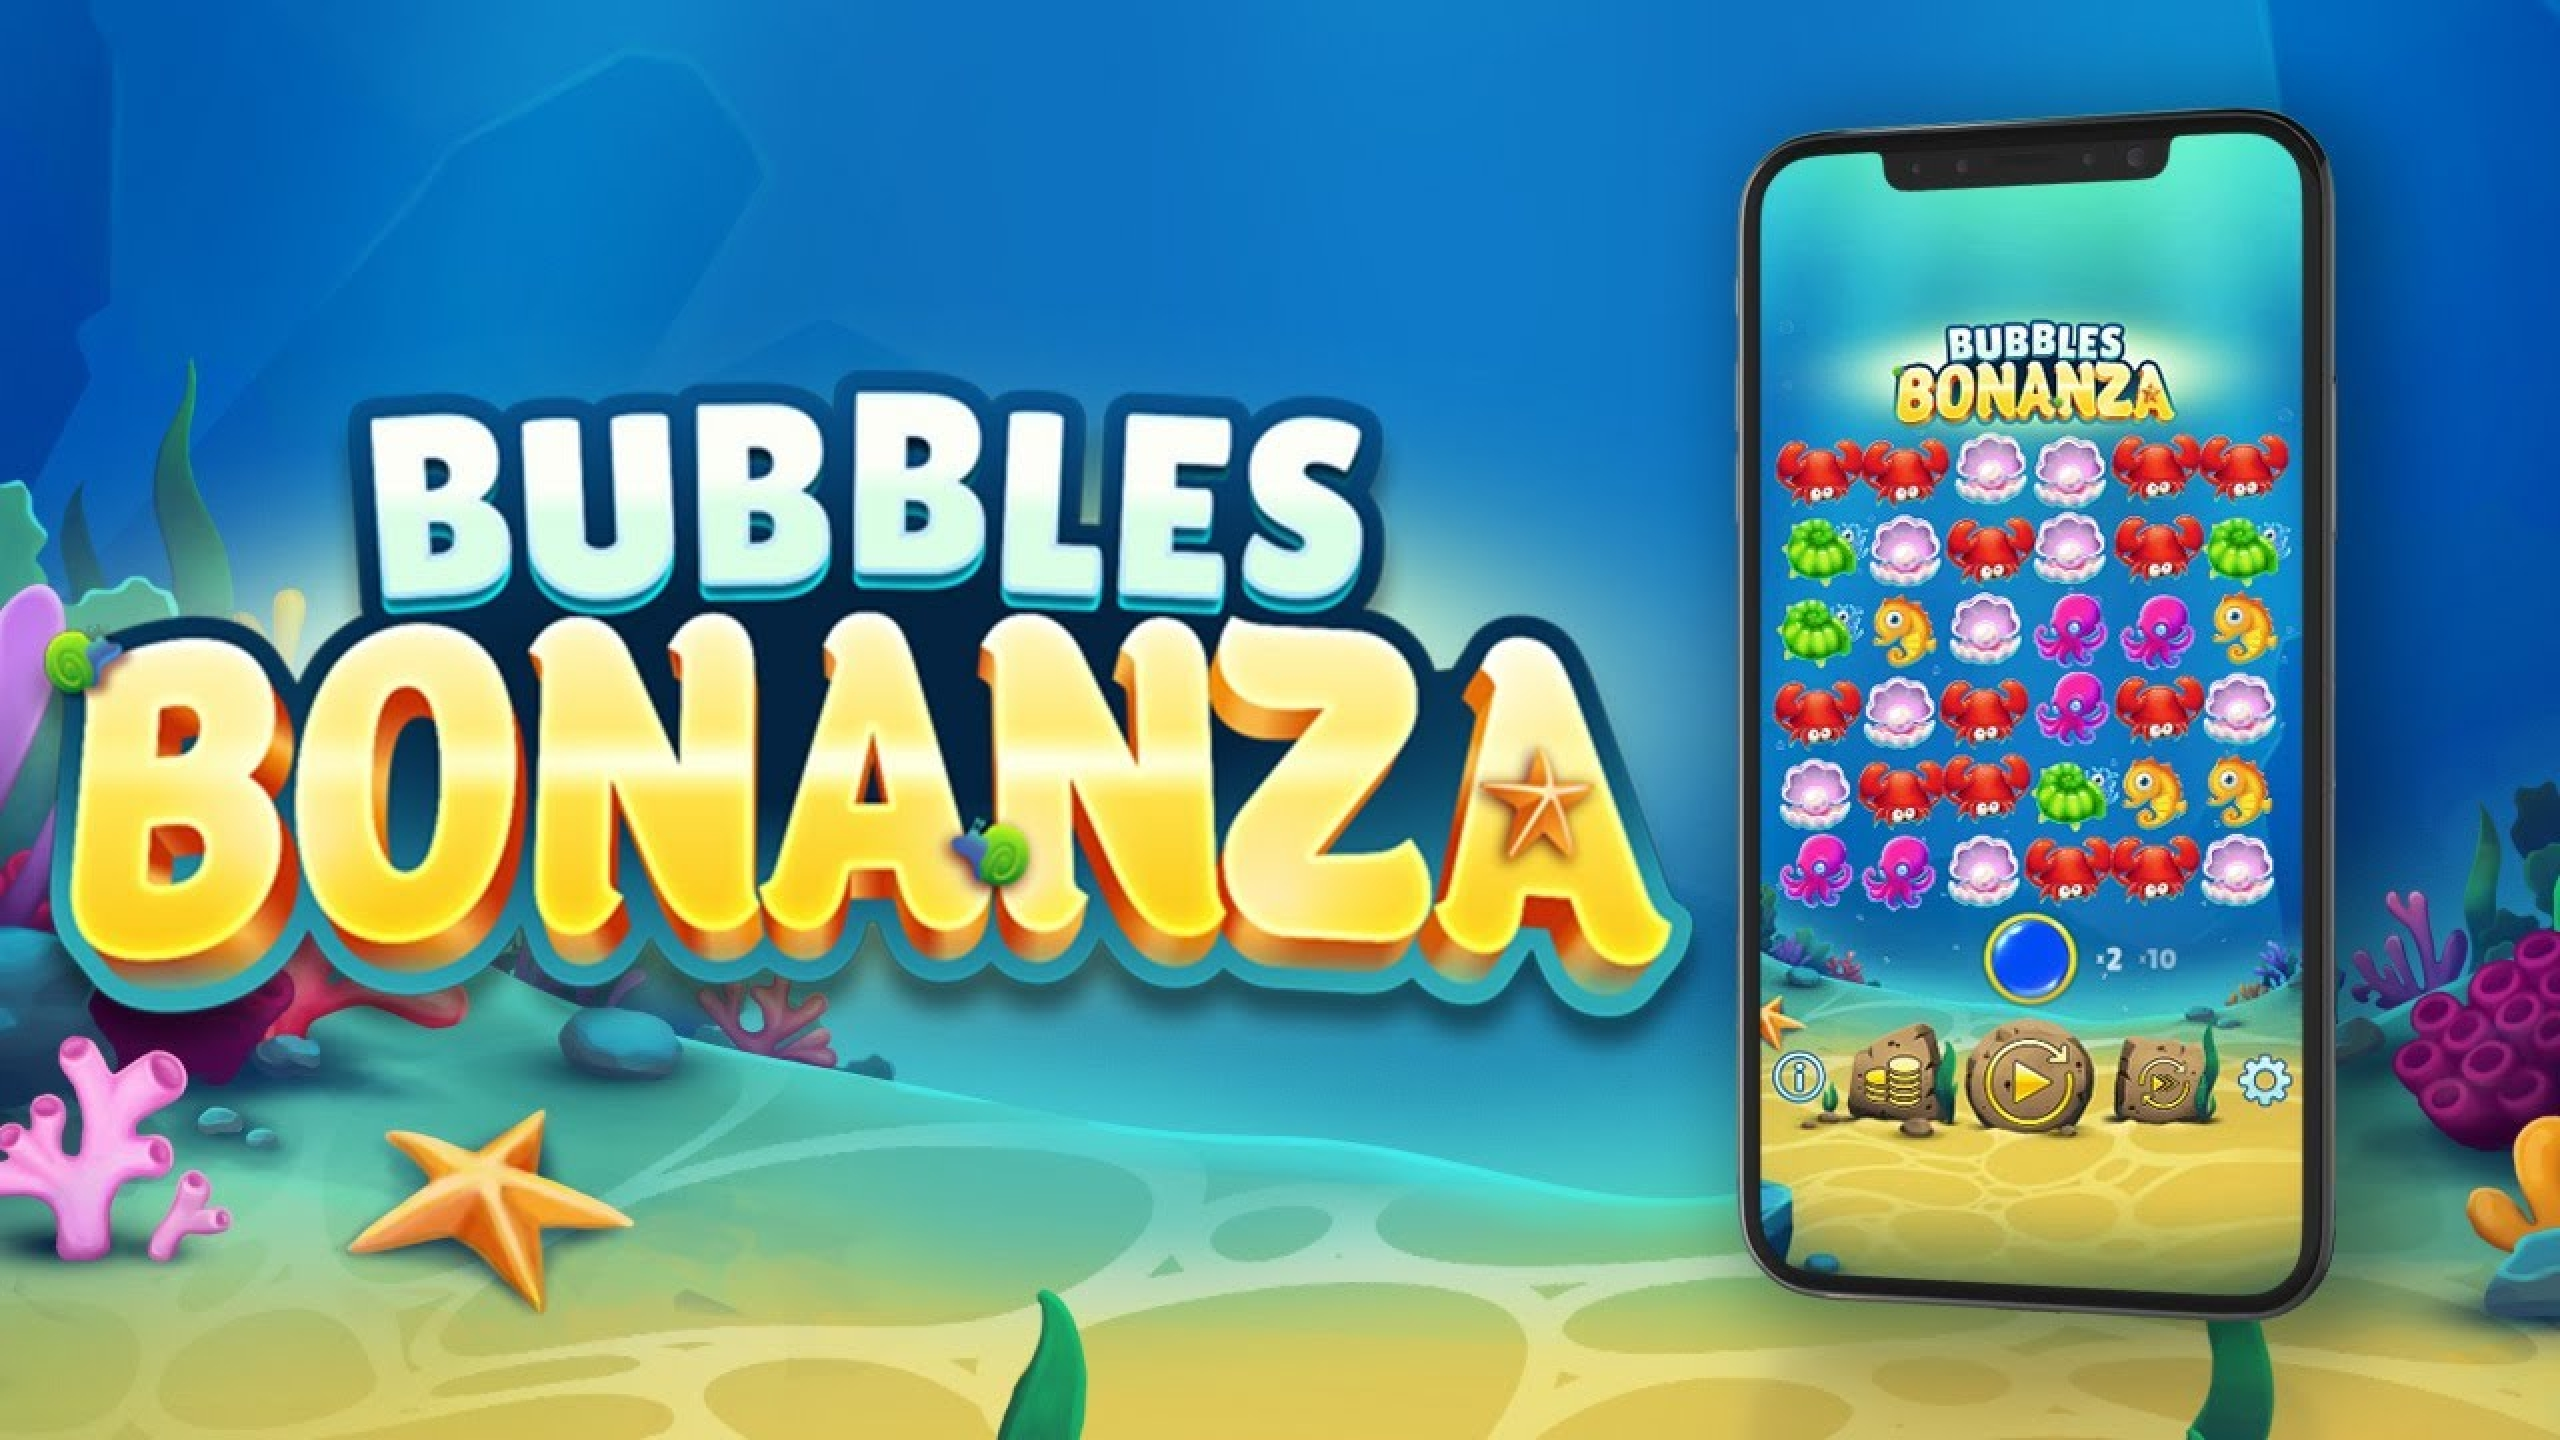 The Bubbles Bonanza Online Slot Demo Game by OneTouch